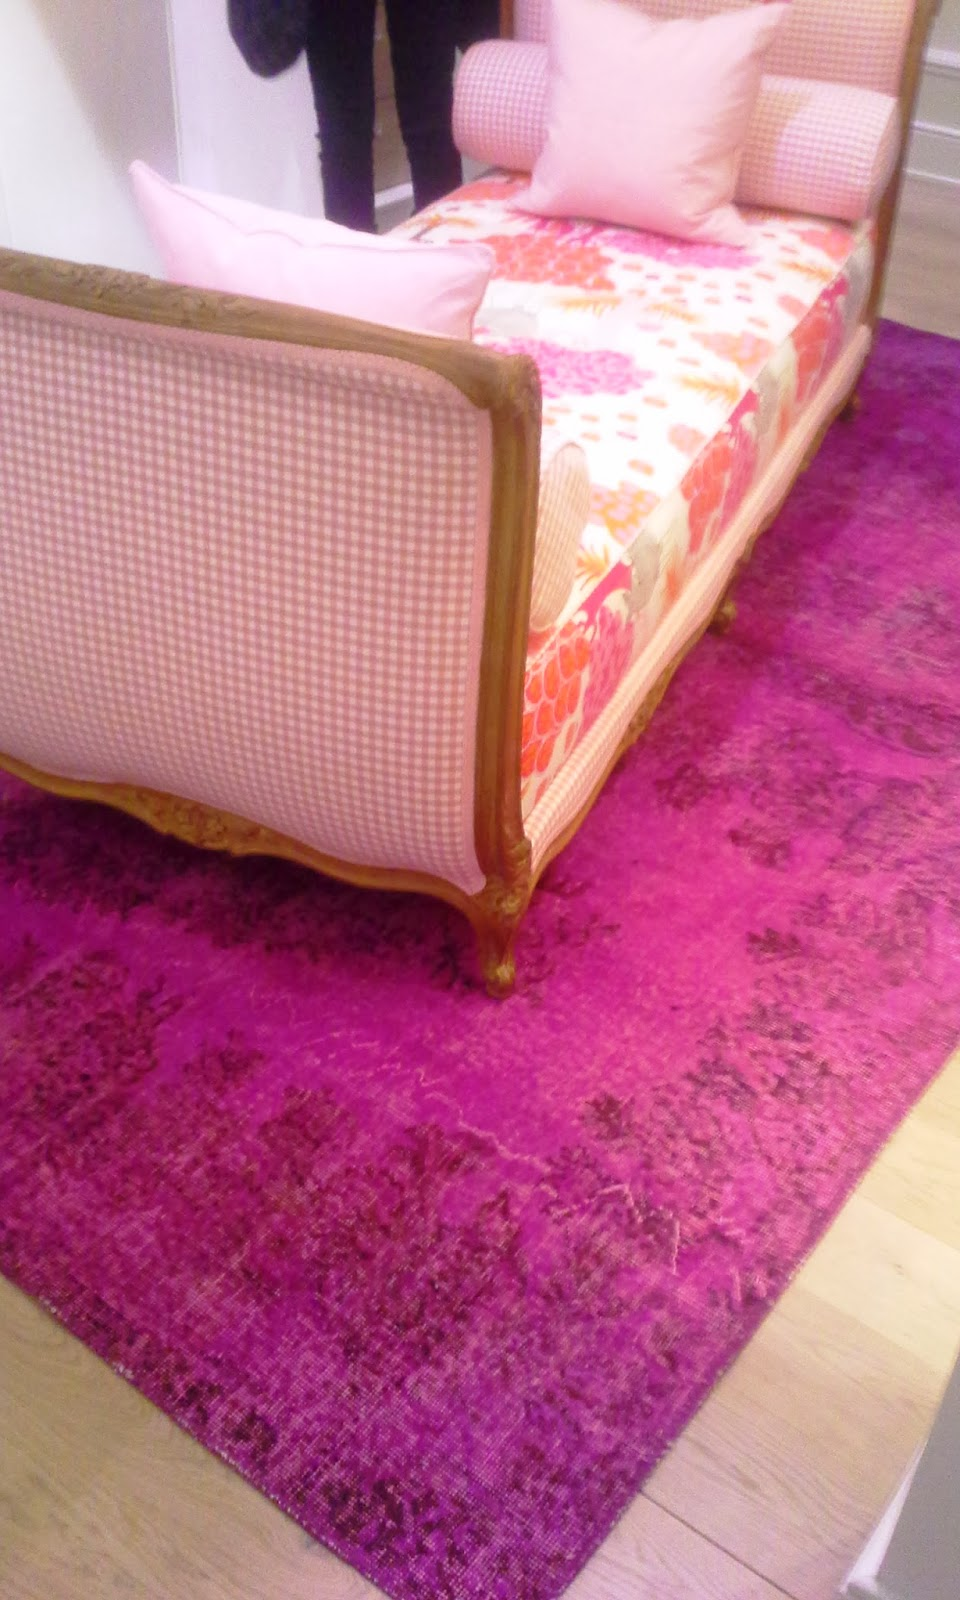 Ikea Purple Persian Rug at The Interior Design Show in Toronto, fashion, interior design blogger style Melanie.Ps The Purple Scarf